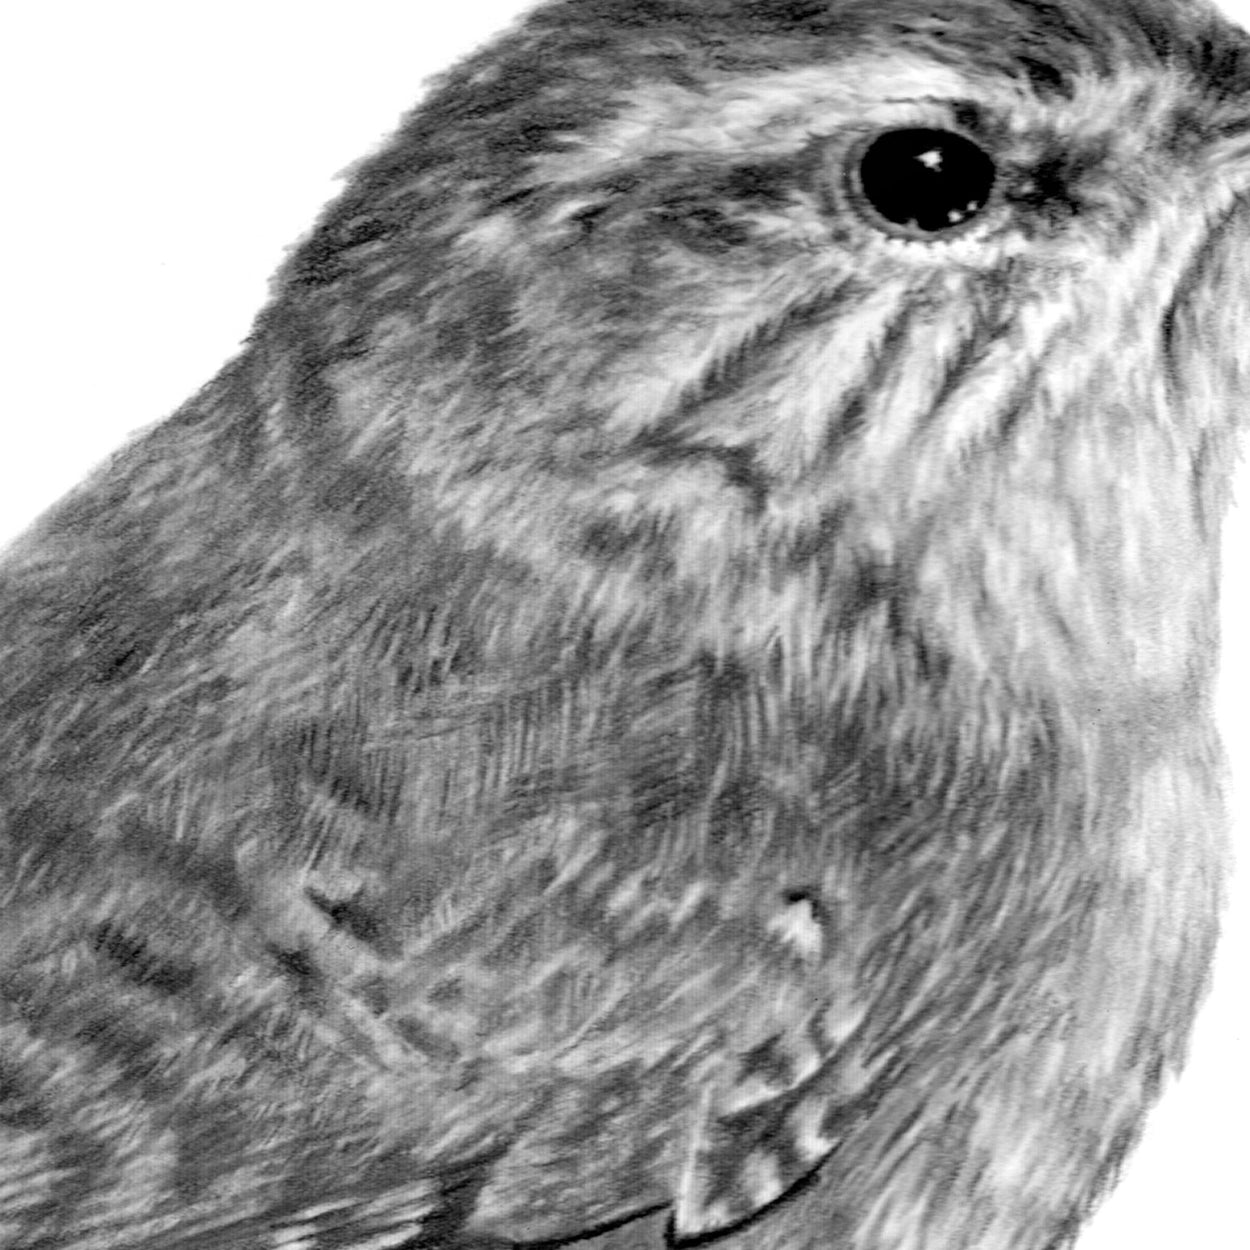 Wren Graphite Drawing Detail - The Thriving Wild